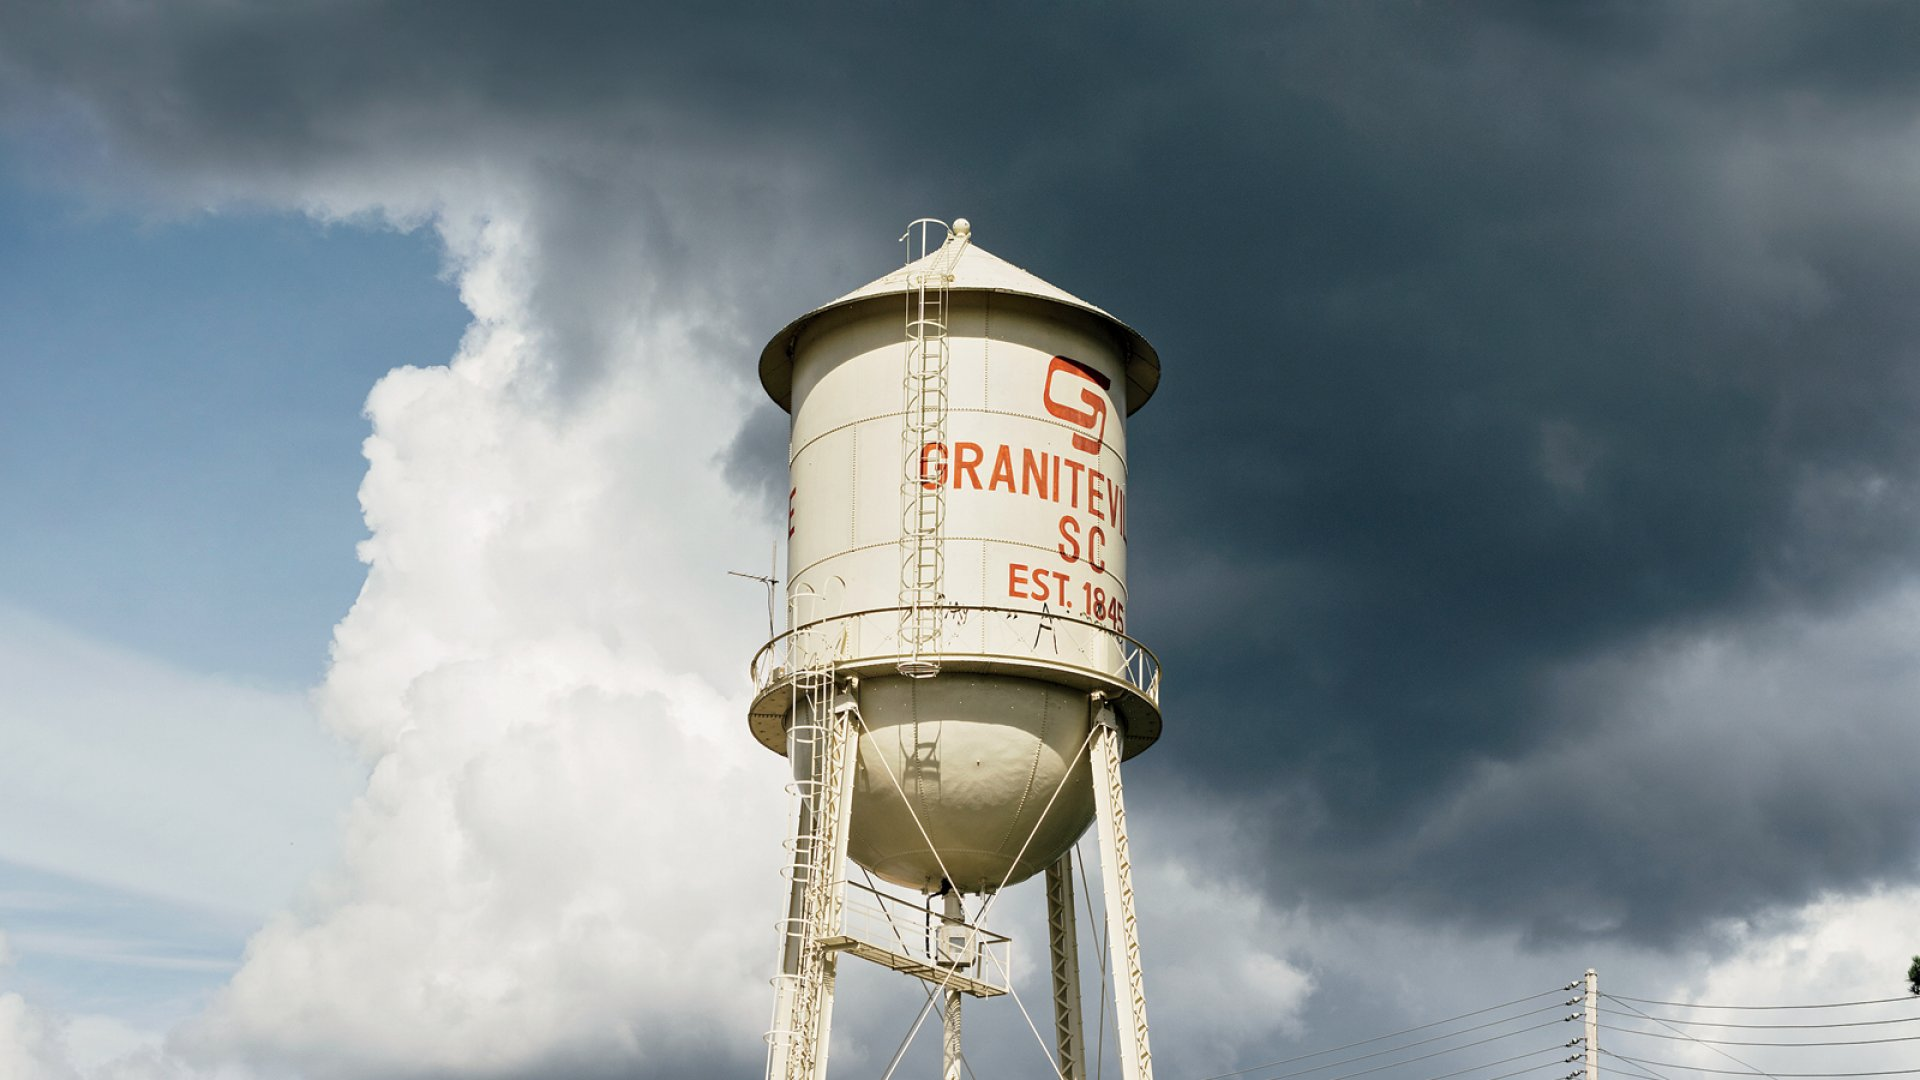 Graniteville's iconic water tower stands above the grounds of the town's old textile mills. Like the mills, the water tower fell into disrepair until Recleim opened a next-generation recycling plant in 2012.